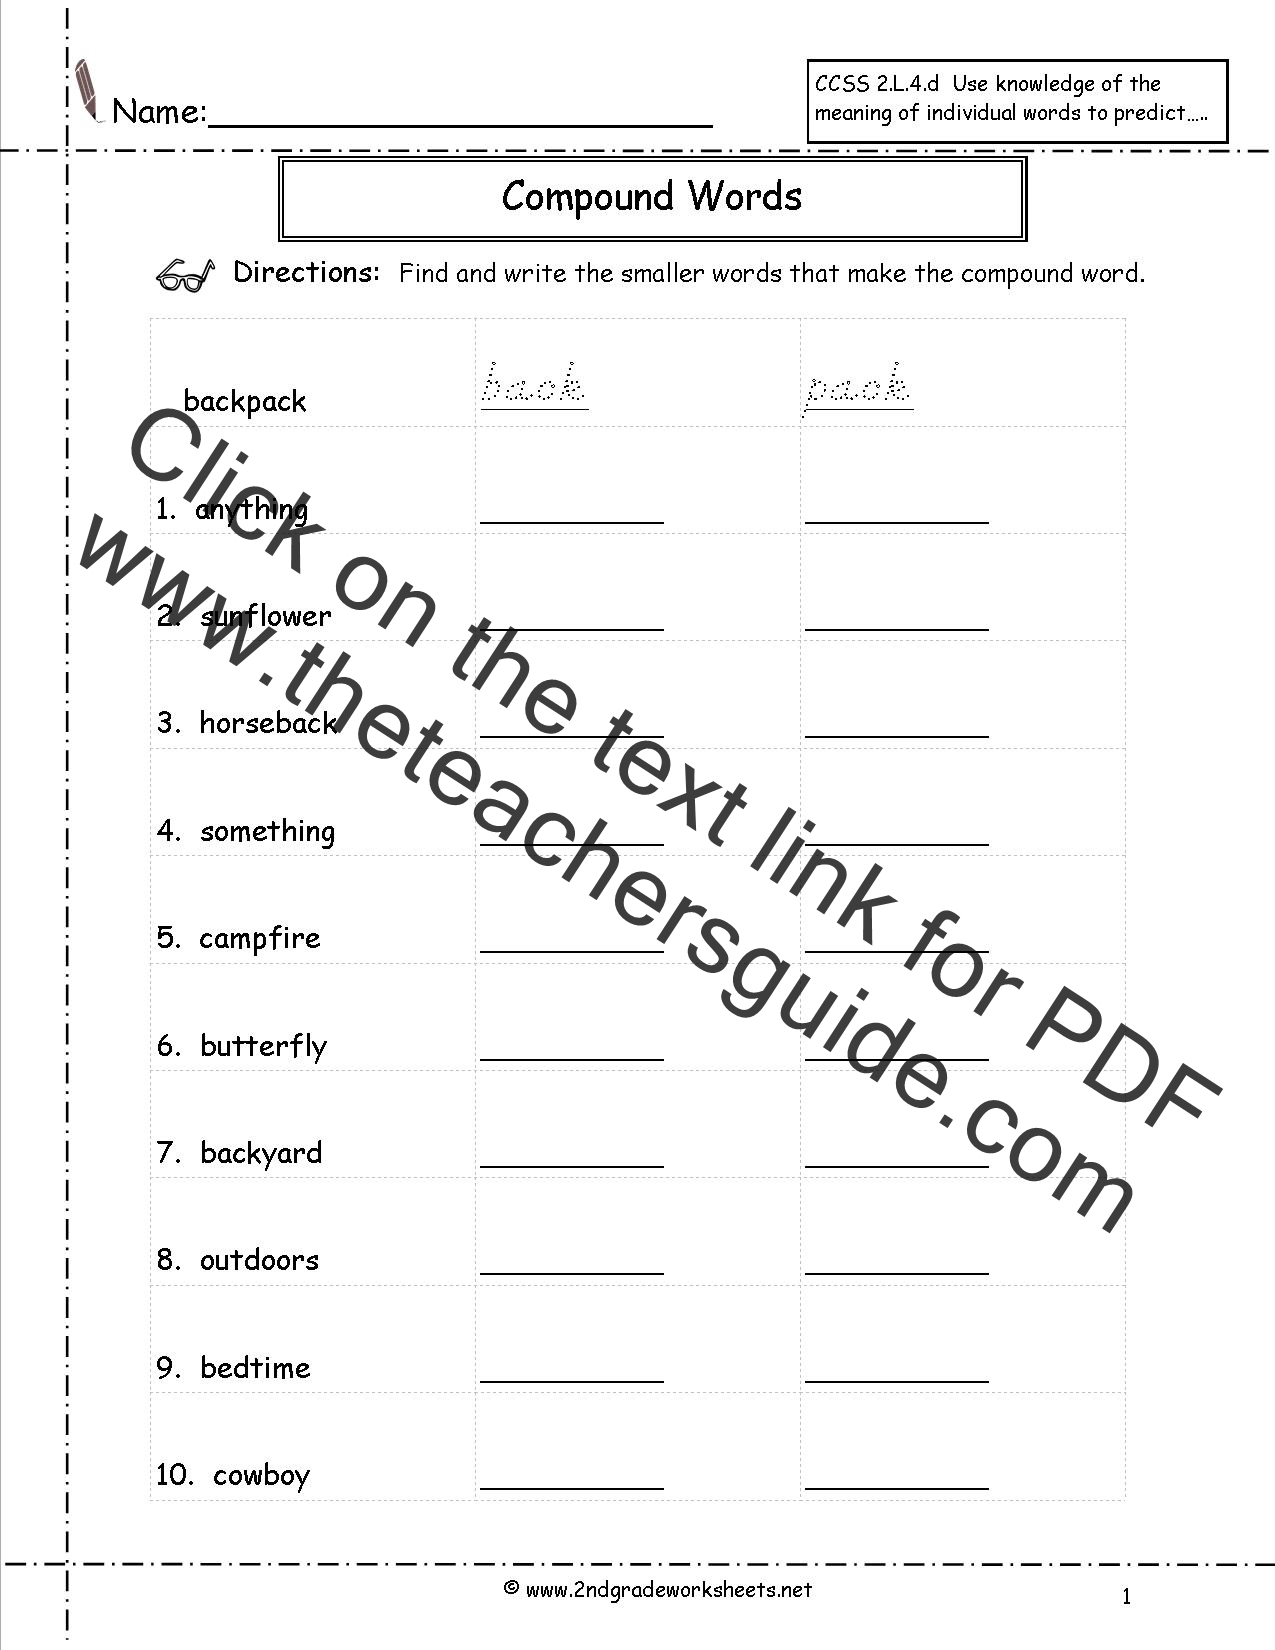 Free LanguageGrammar Worksheets and Printouts – Contractions Worksheets 2nd Grade